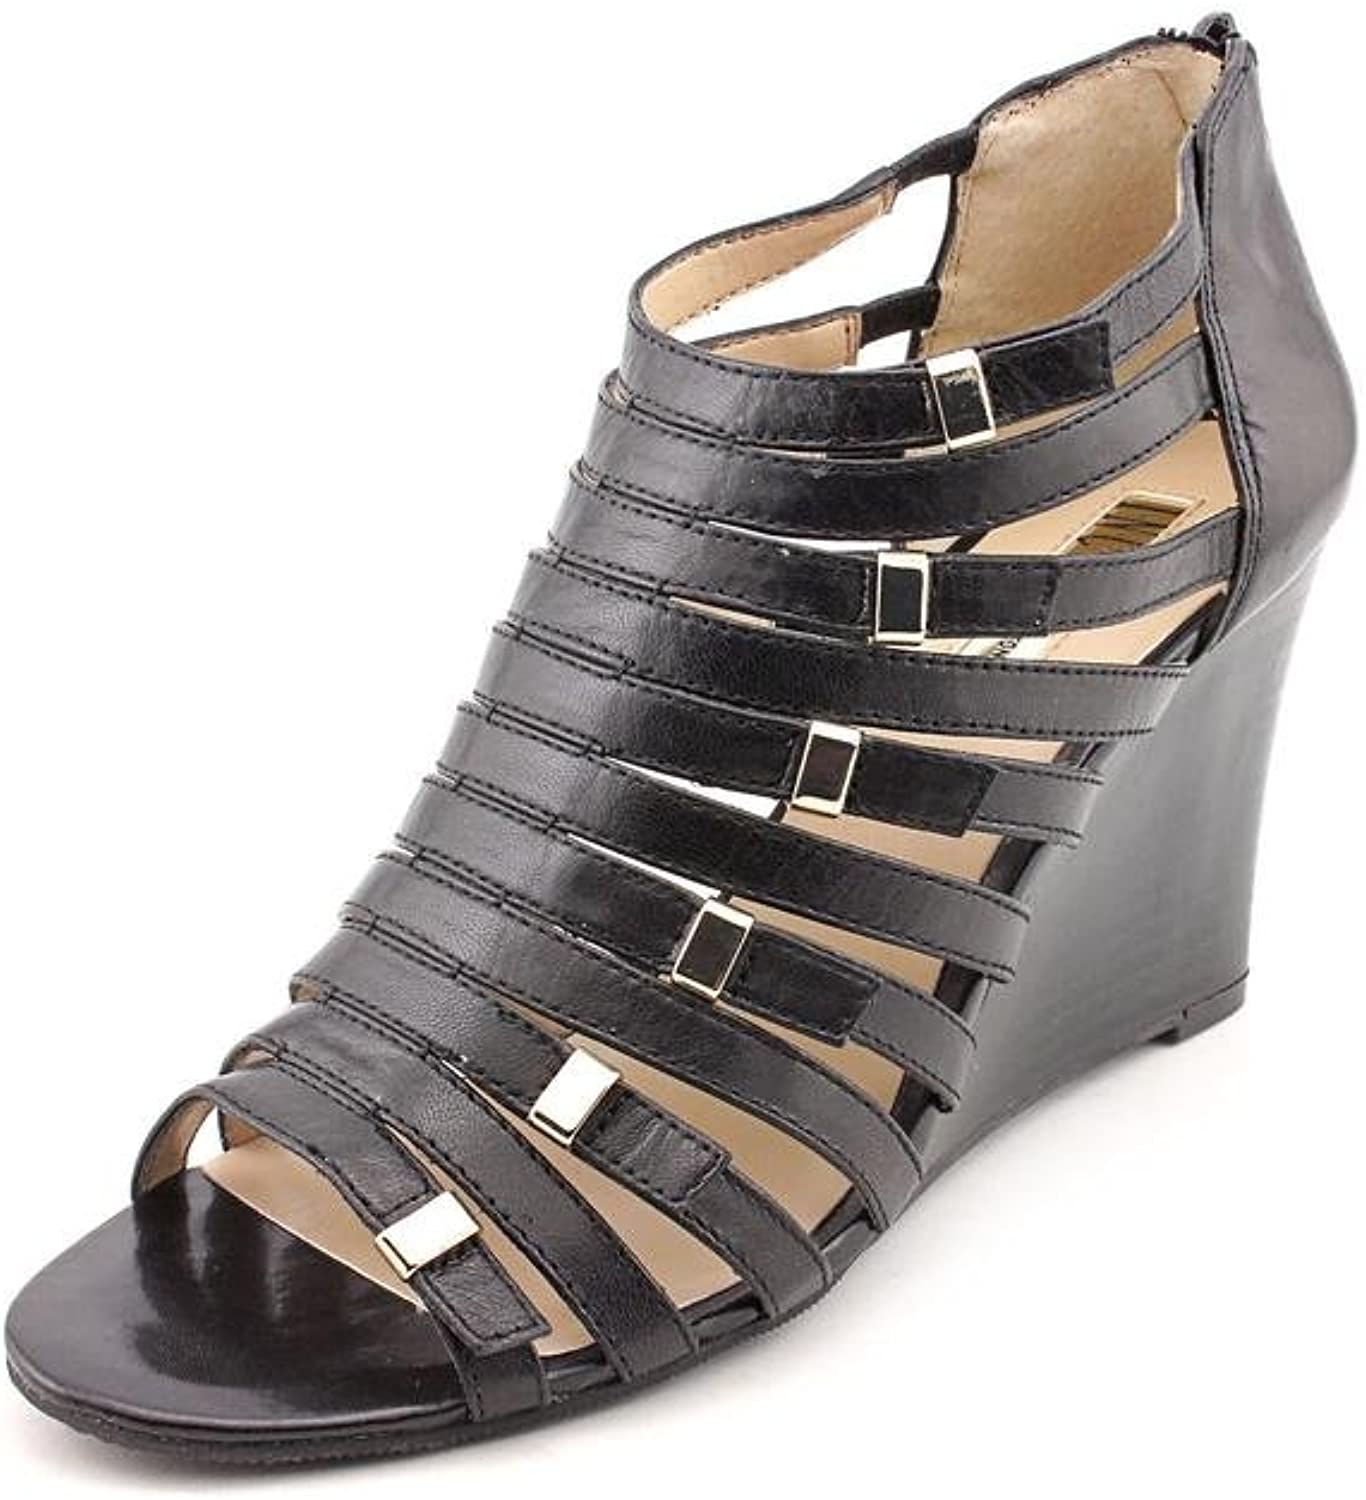 I. Dionne Wedge Sandal - Black, 5.5 M